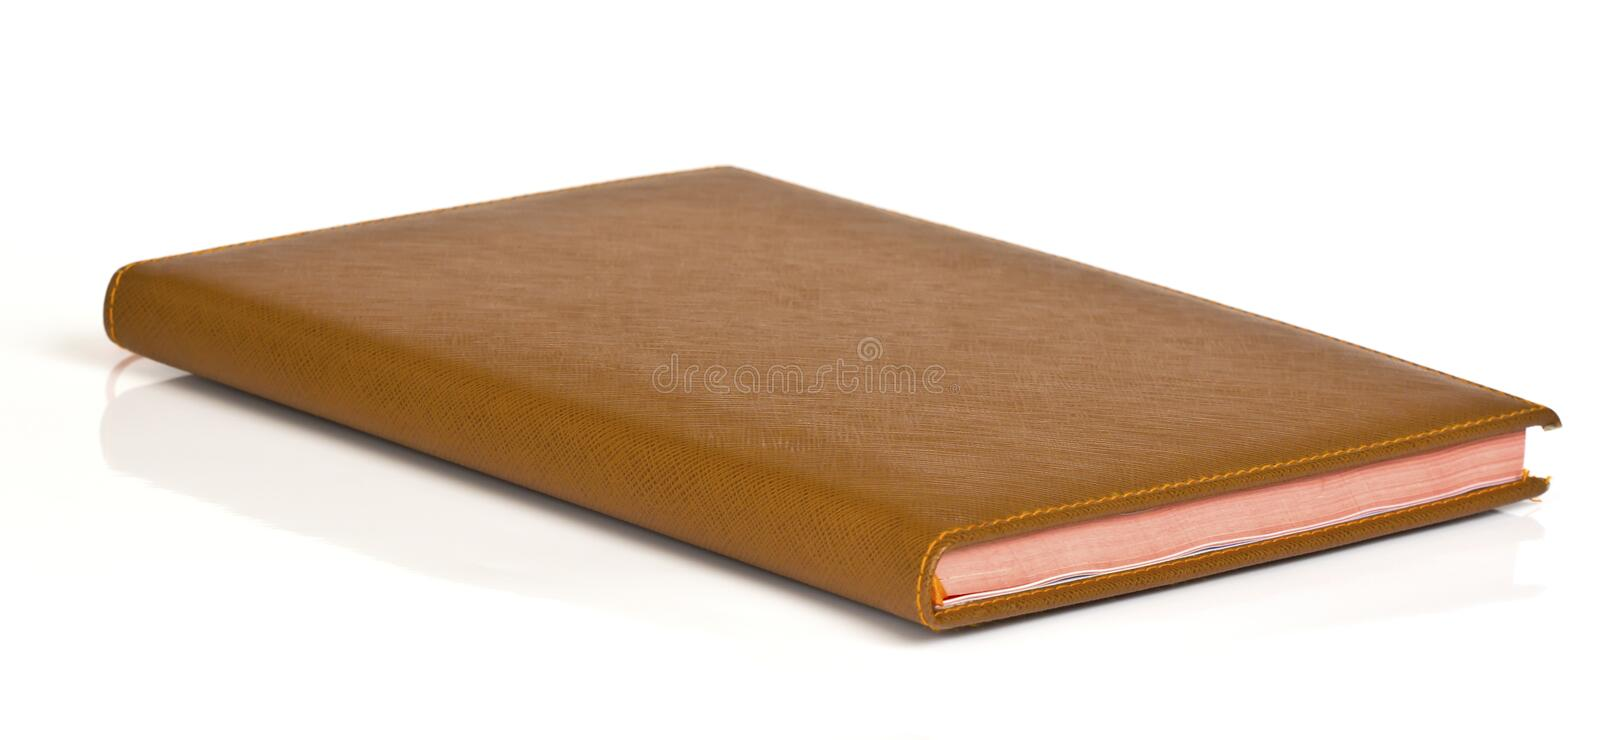 Download Note book or diary stock image. Image of close, list - 31569773